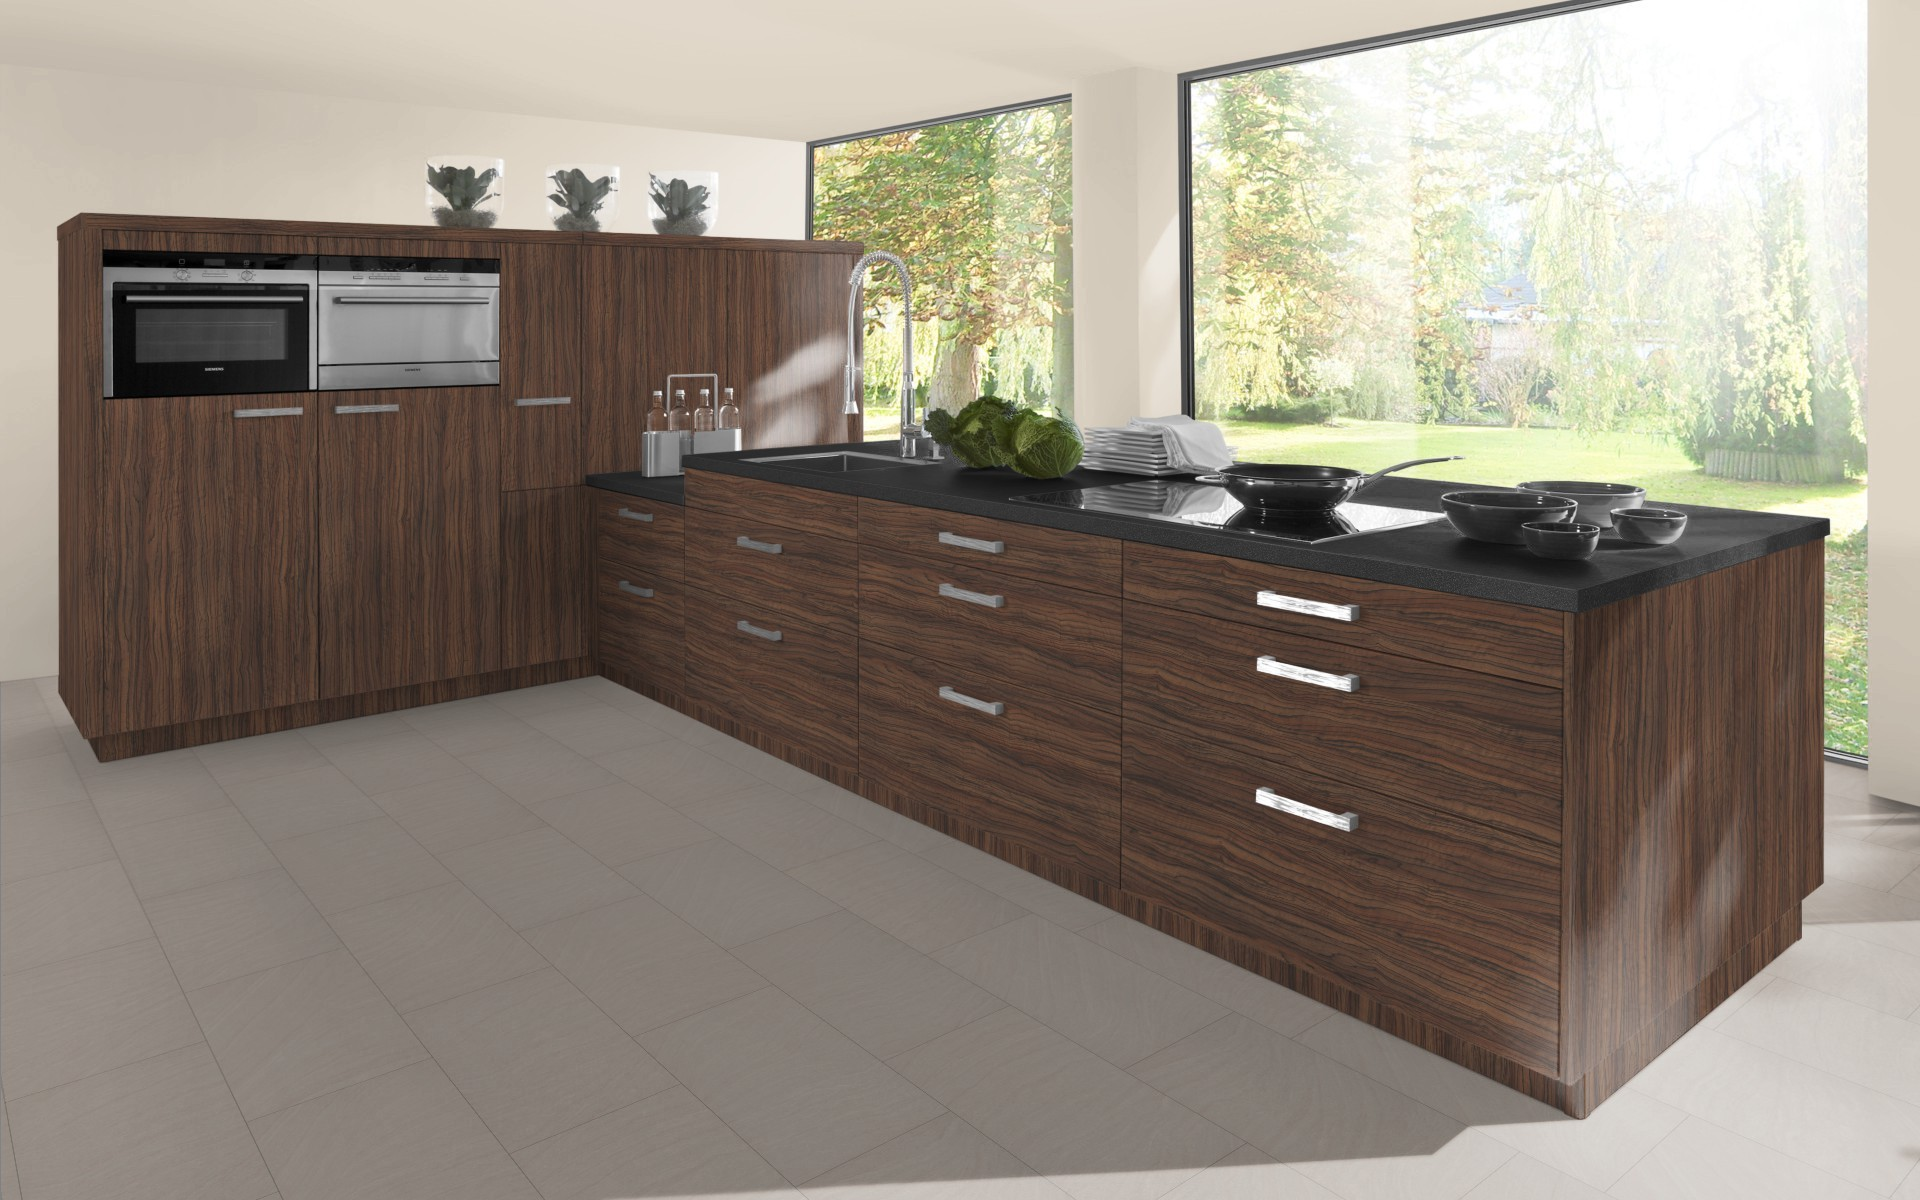 High gloss base corner cabinet door trade kitchens for all for Kitchen cabinets 900mm high